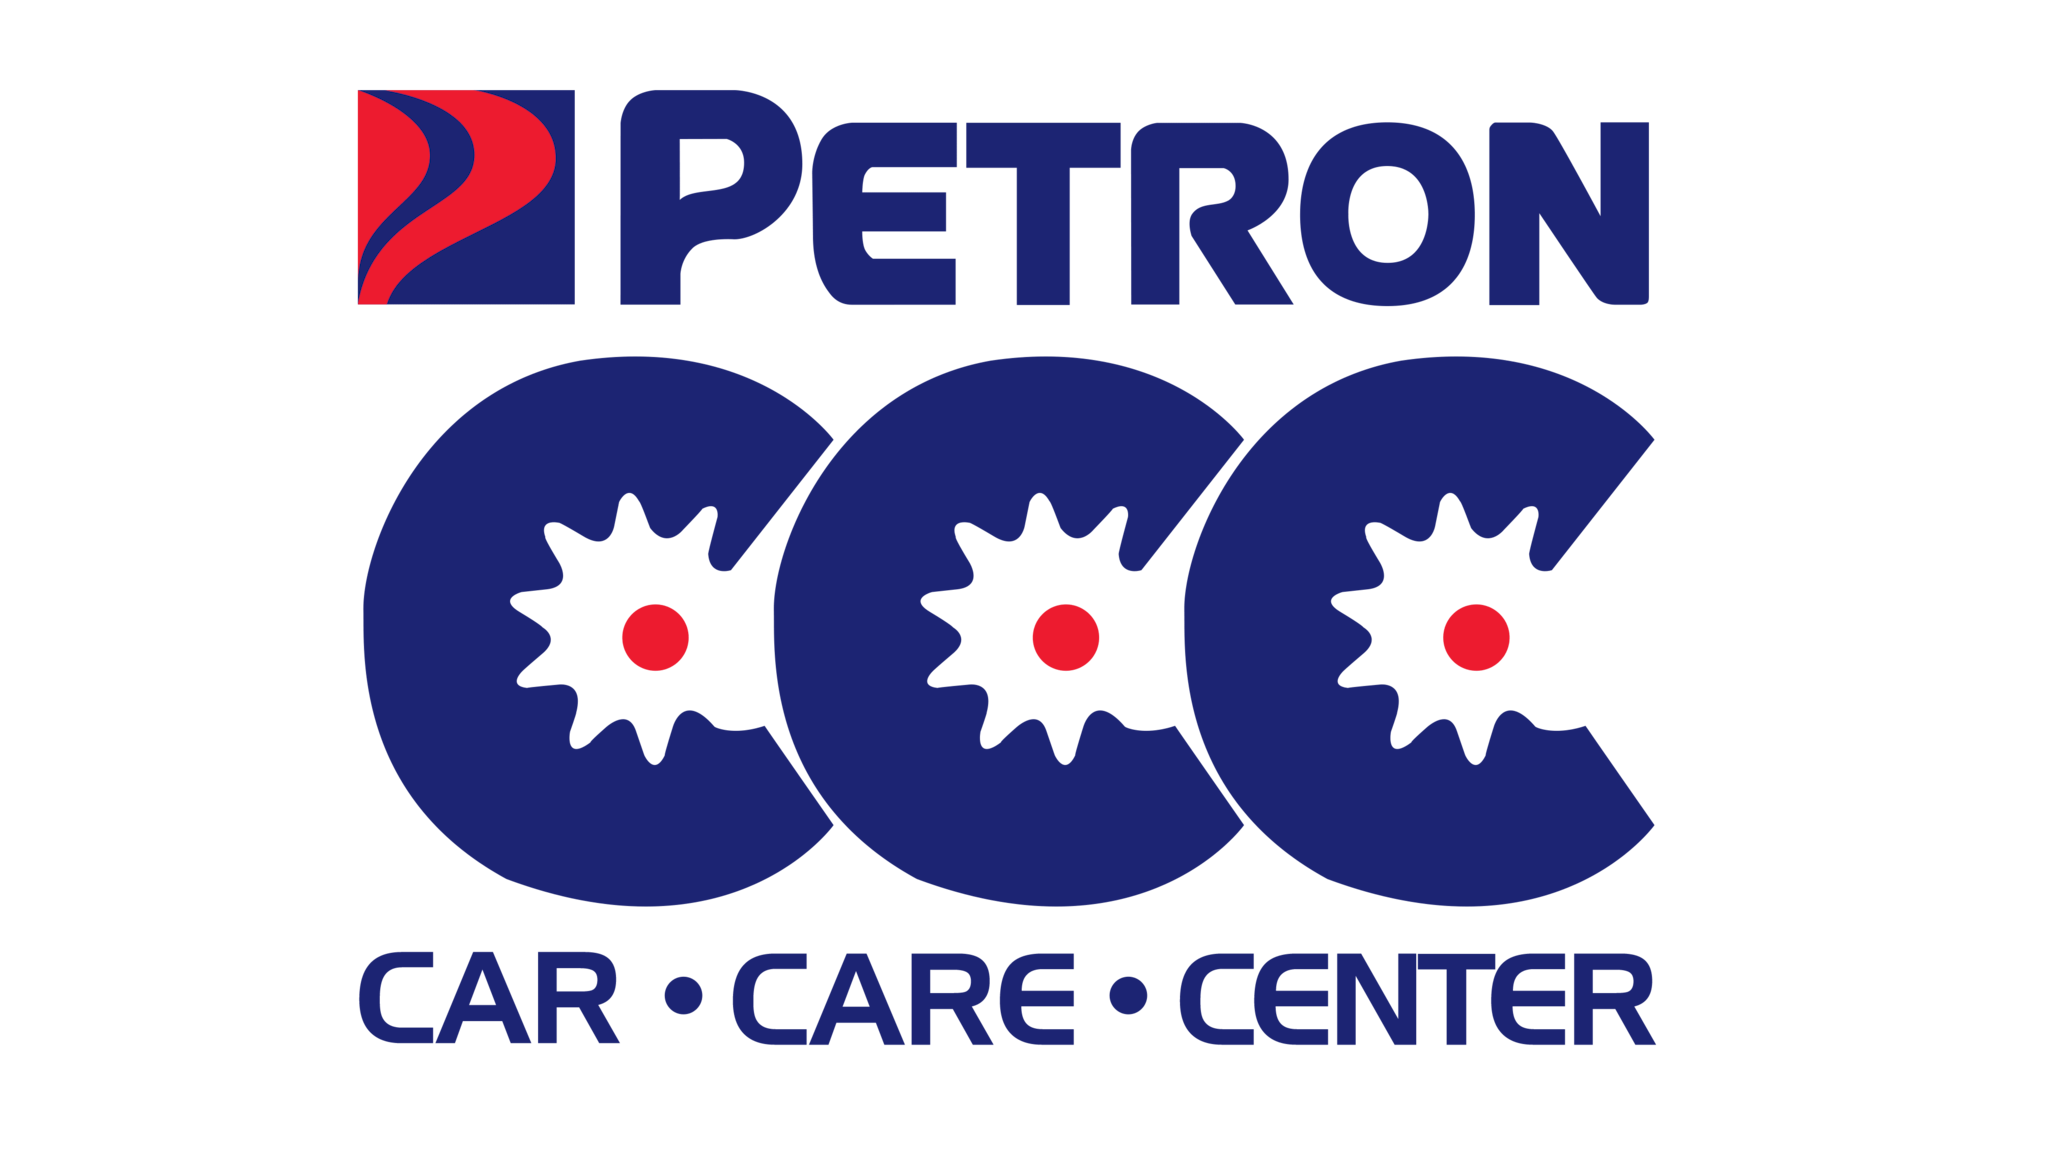 Petron Car Care Center Now in More Locations